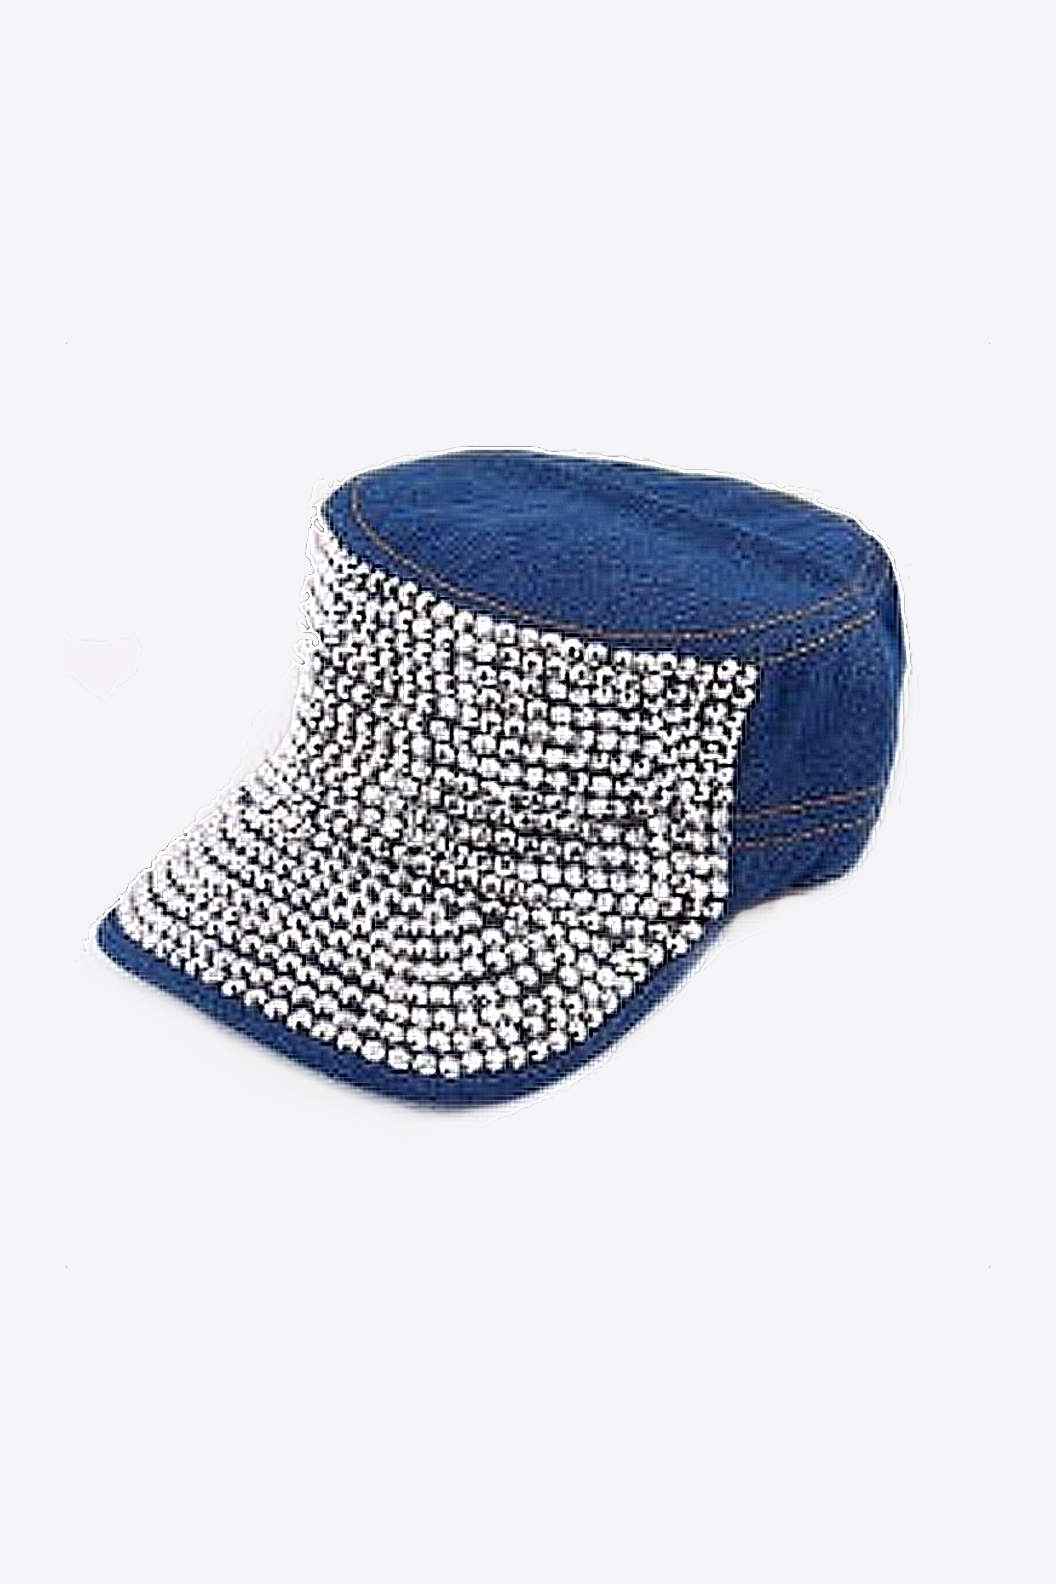 Blue rhinestone baseball cap, blue denim baseball cap, rhinestone baseball cap, rhinestone baseball hat, denim baseball hat